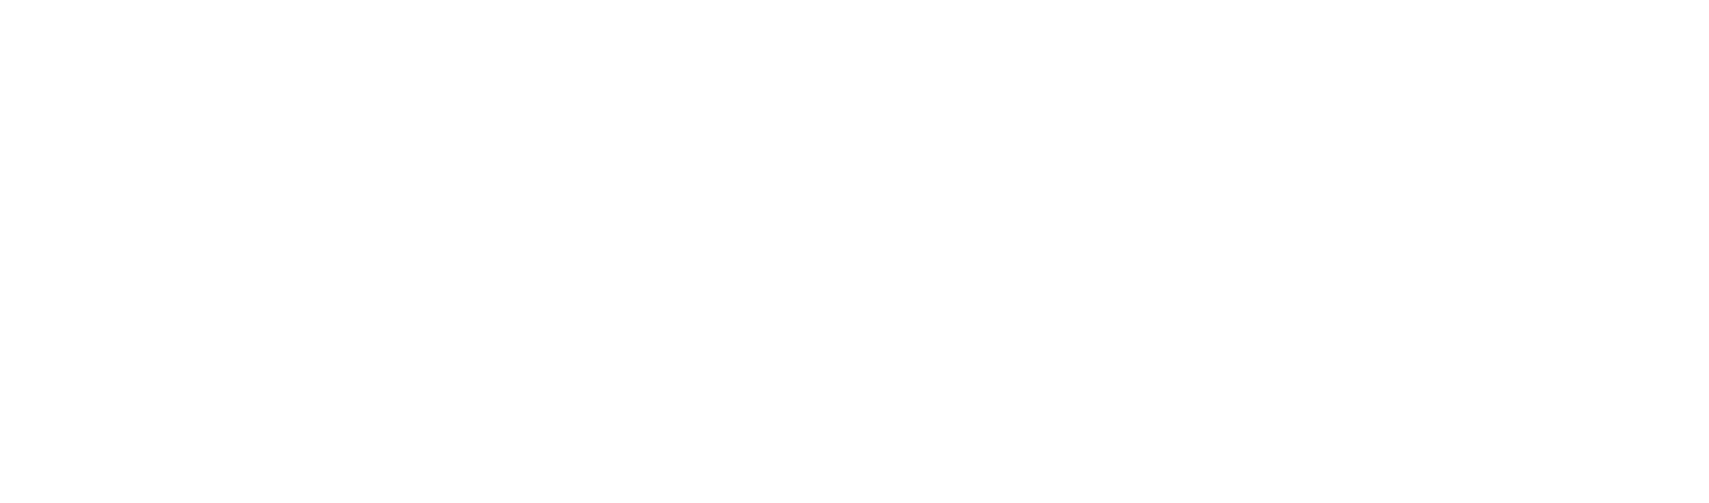 Logo We connect you win logo